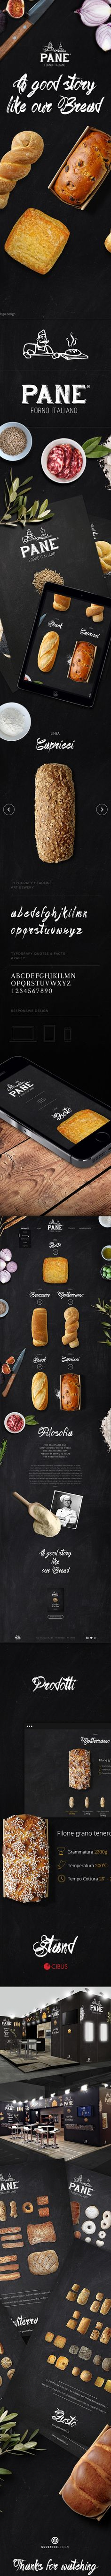 Pane | Forno Italiano by Scozzese Design, via Behance